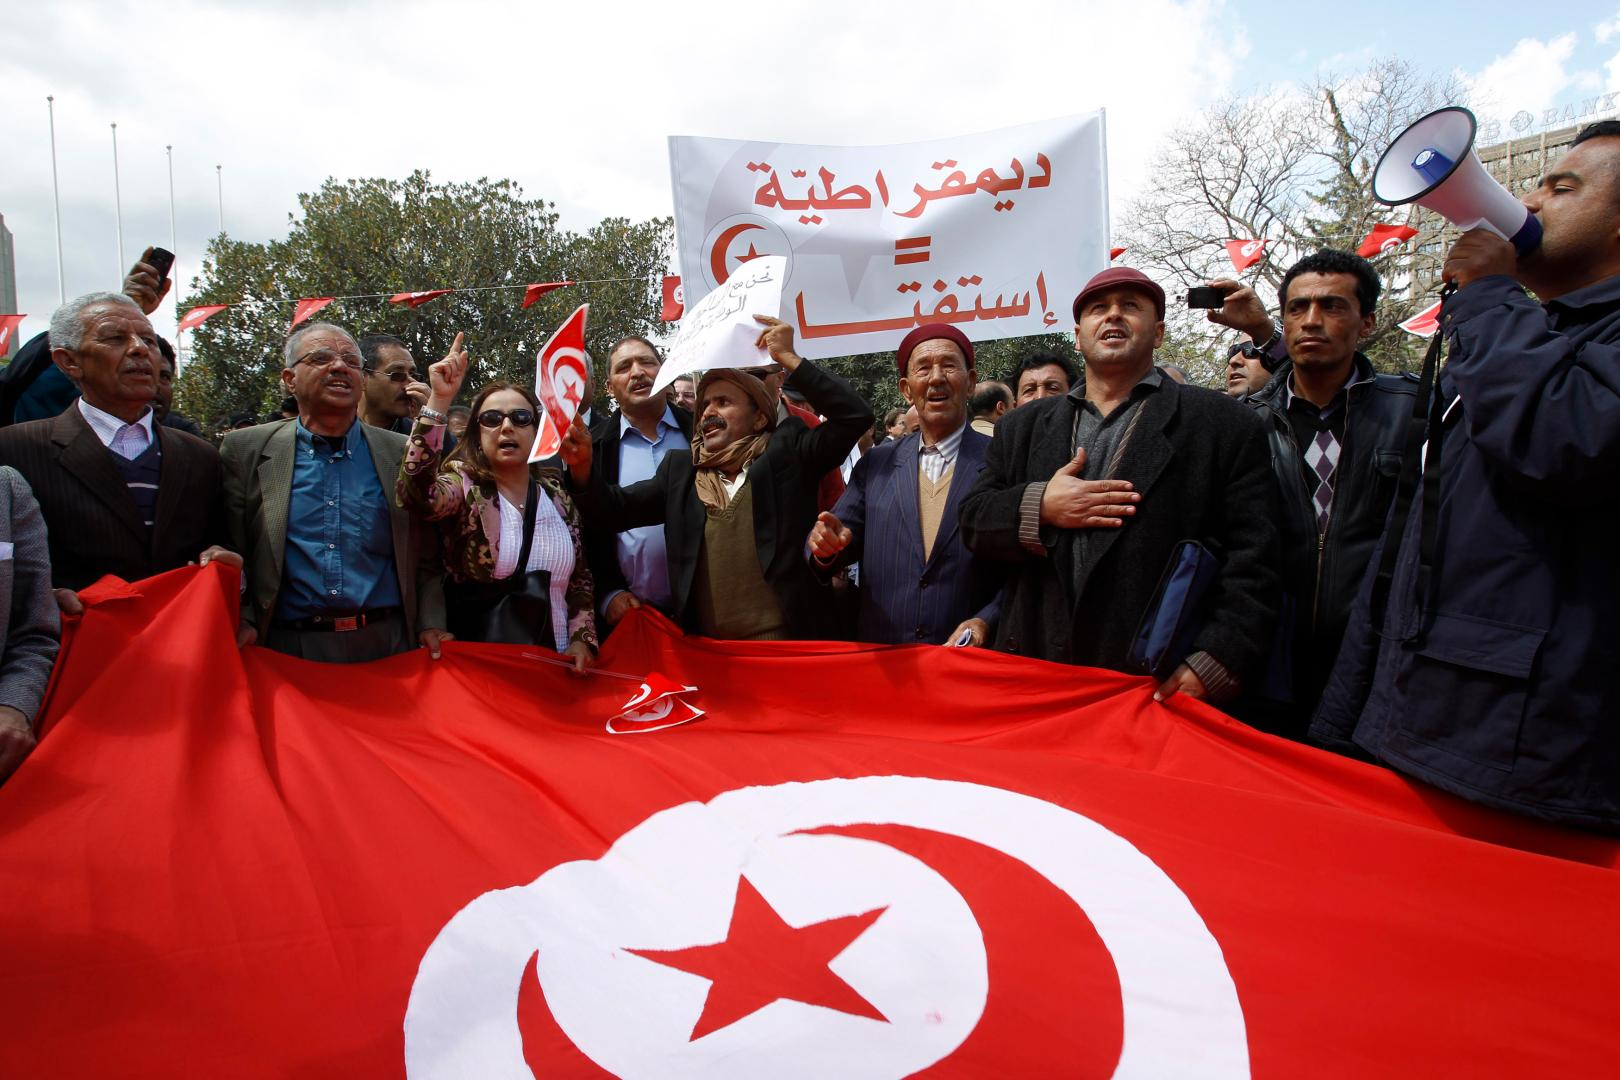 Supporters of Tunisia's ousted president Zine Al-Abidine Ben Ali's Constitutional Democratic Rally (RCD) party hold a protest against what they said was their their marginalization by society and to demand their right to participate in the country's political life, in Tunis April 16, 2011. A Tunisian judge ruled in March that the RCD was to be disbanded and its funds seized. The party's former senior members were also banned from taking part in upcoming July elections. The sign reads,